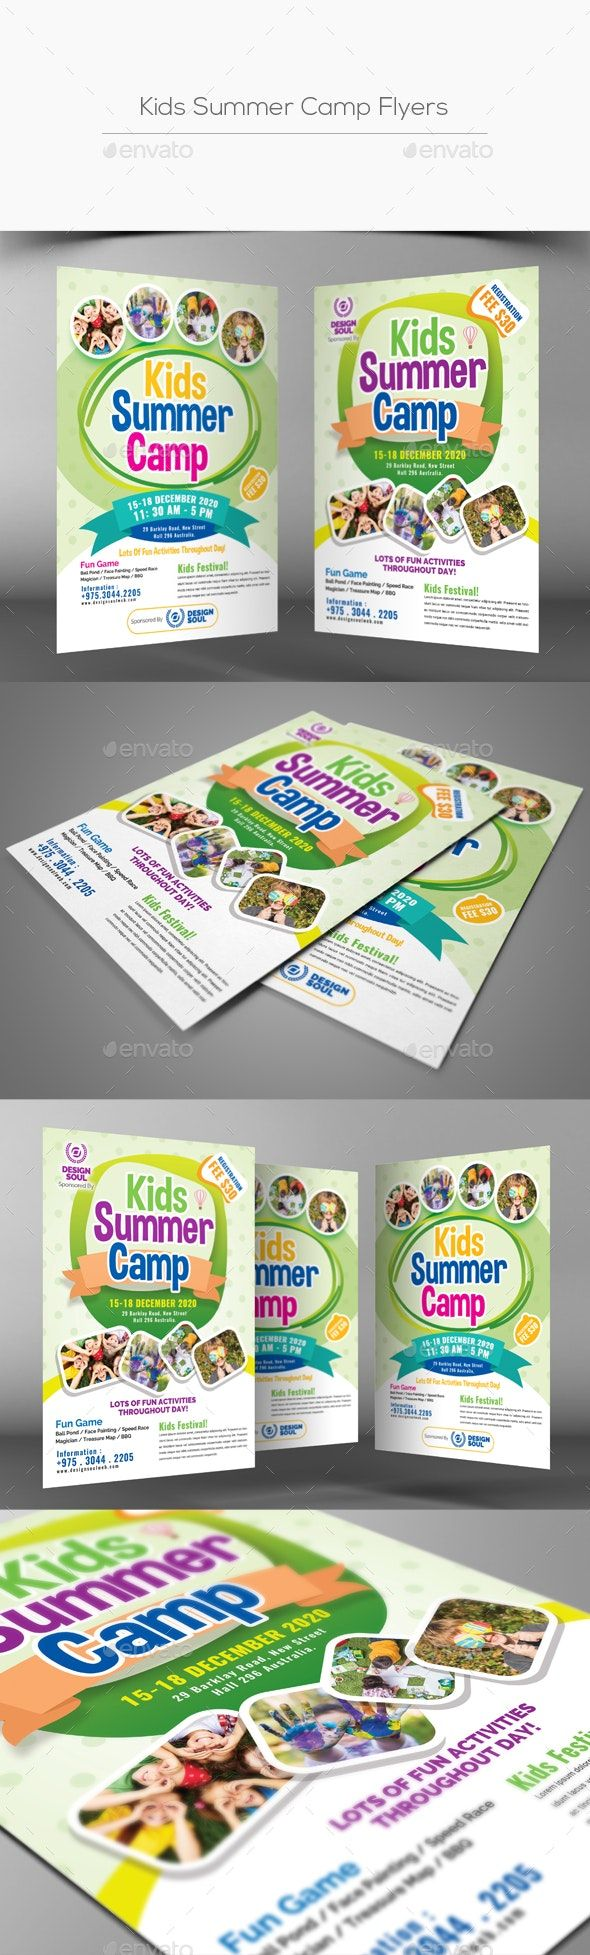 Kids Summer Camp Flyer Templates